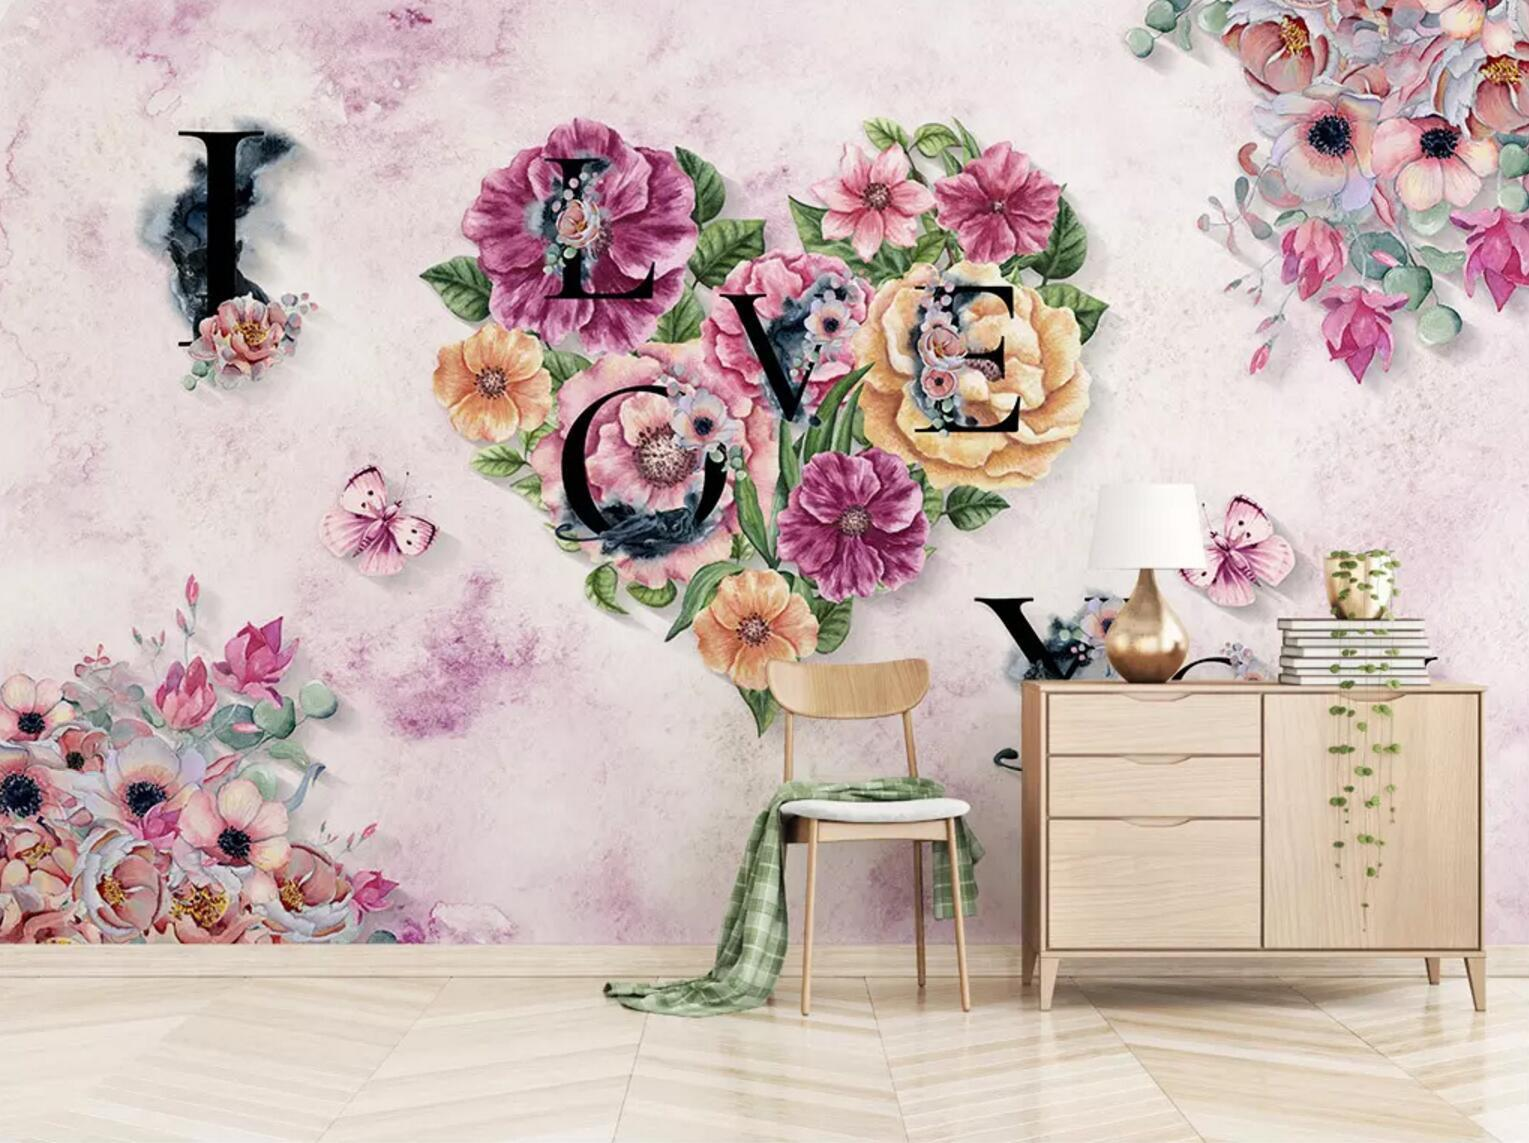 3D Love Flower 367 Wallpaper AJ Wallpaper